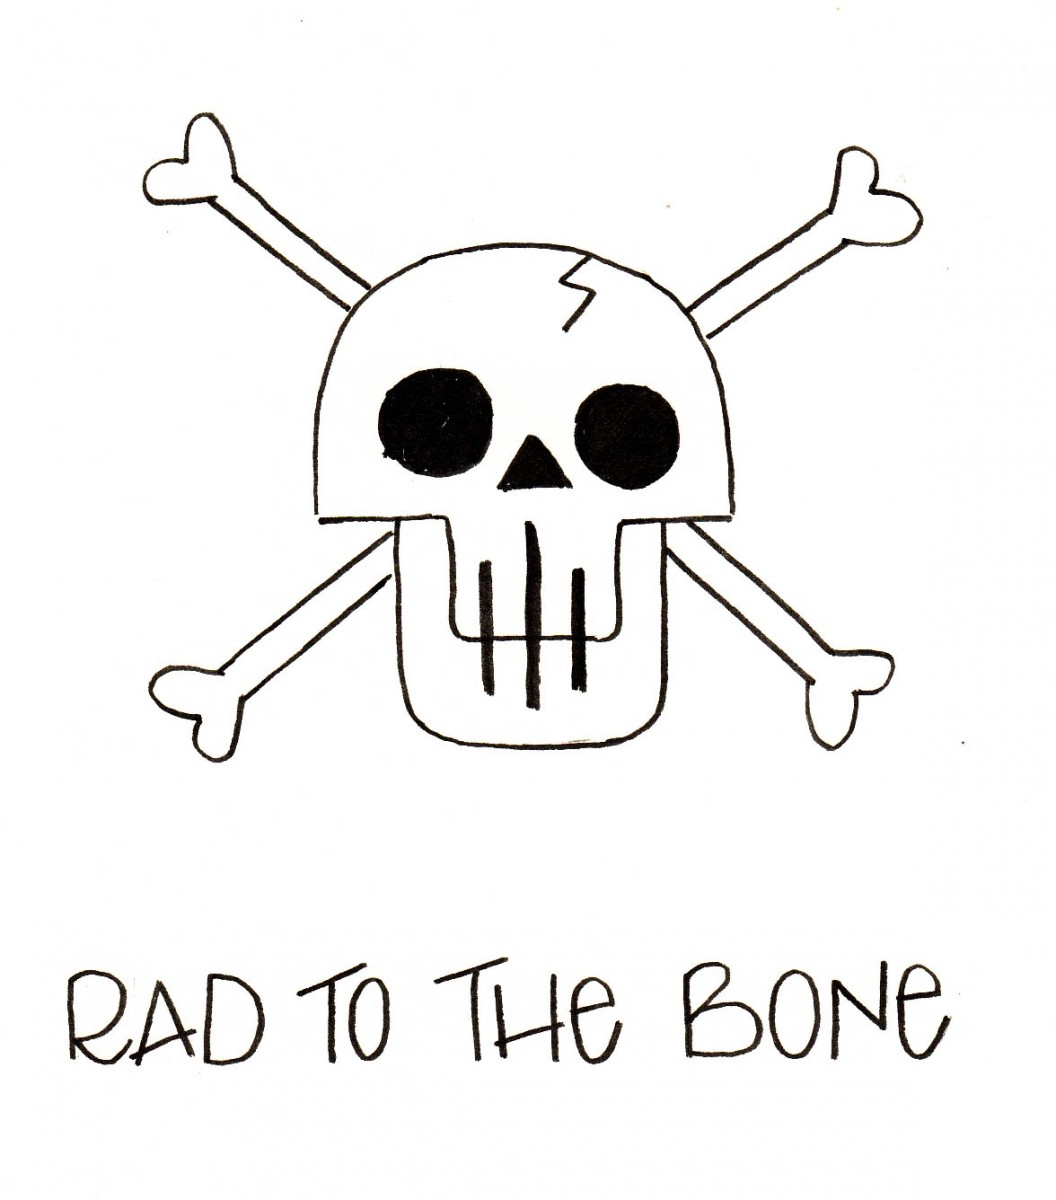 how to draw a skull, how to doodle a skull, love alfa halloween doodles, alfa the artist, love alfa skull, halloween bullet journal, rad to the bone, crossbones